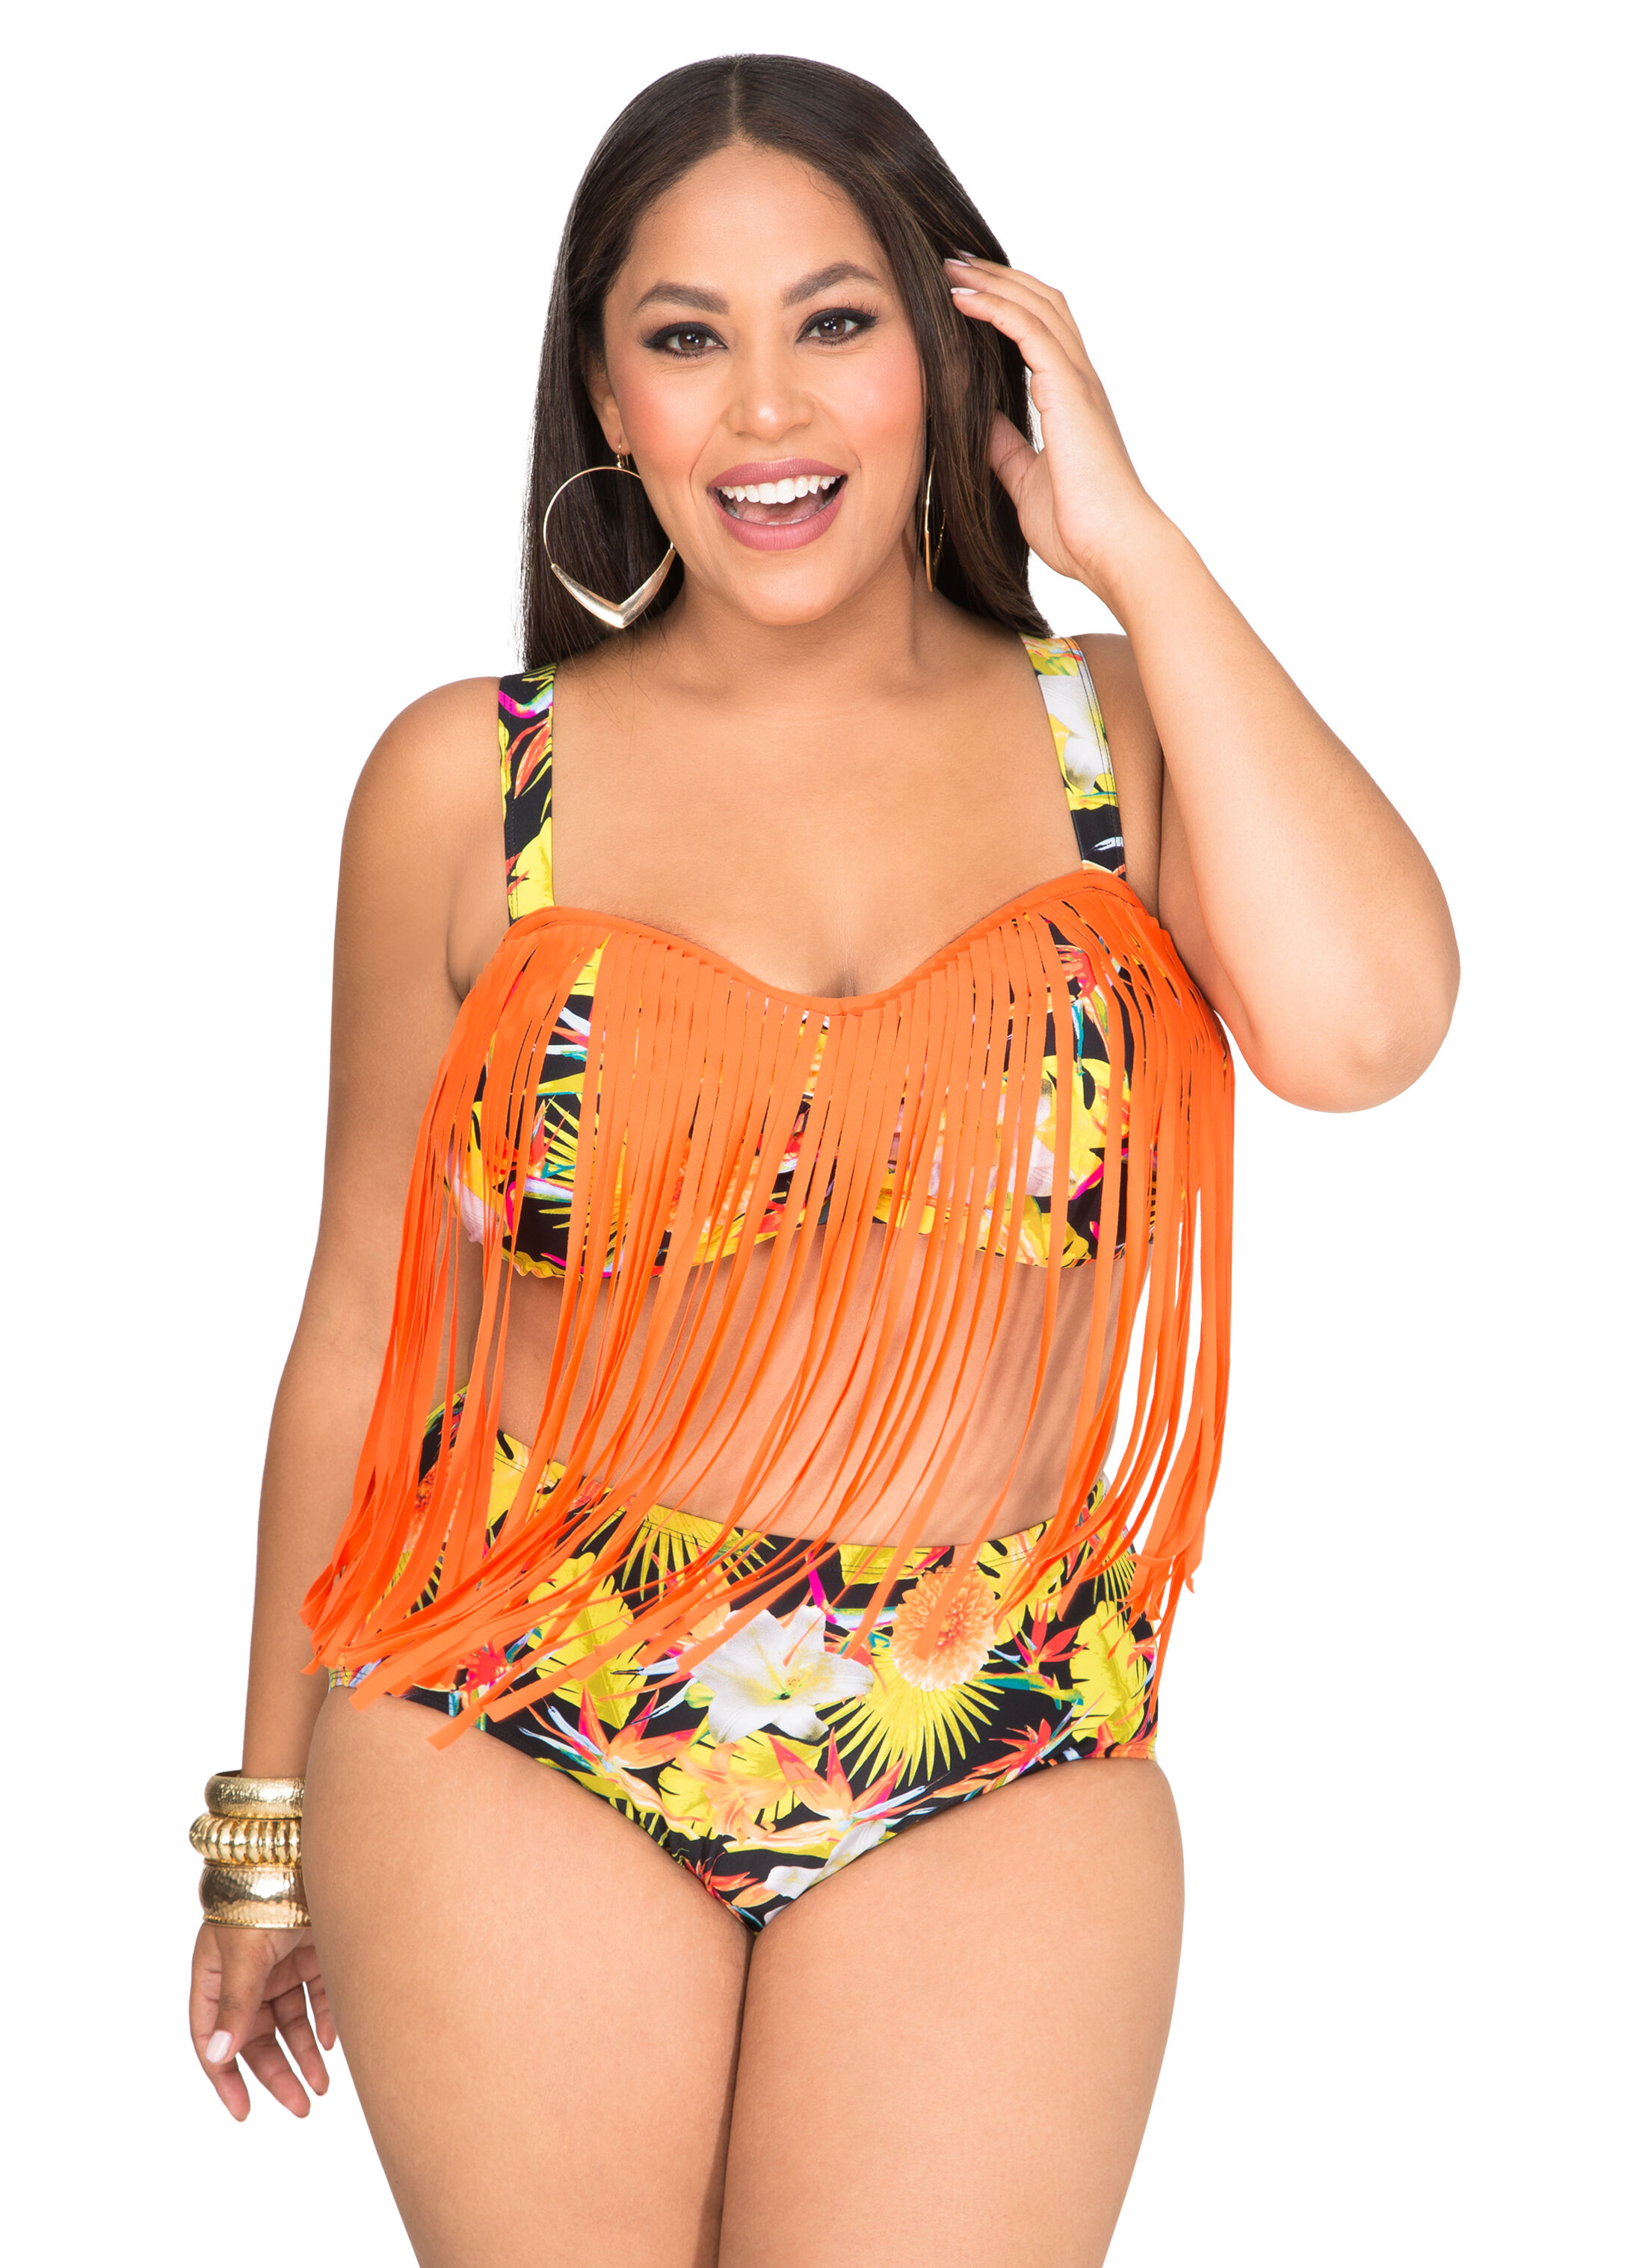 Tropical Fringe Underwire Bra Bikini Top